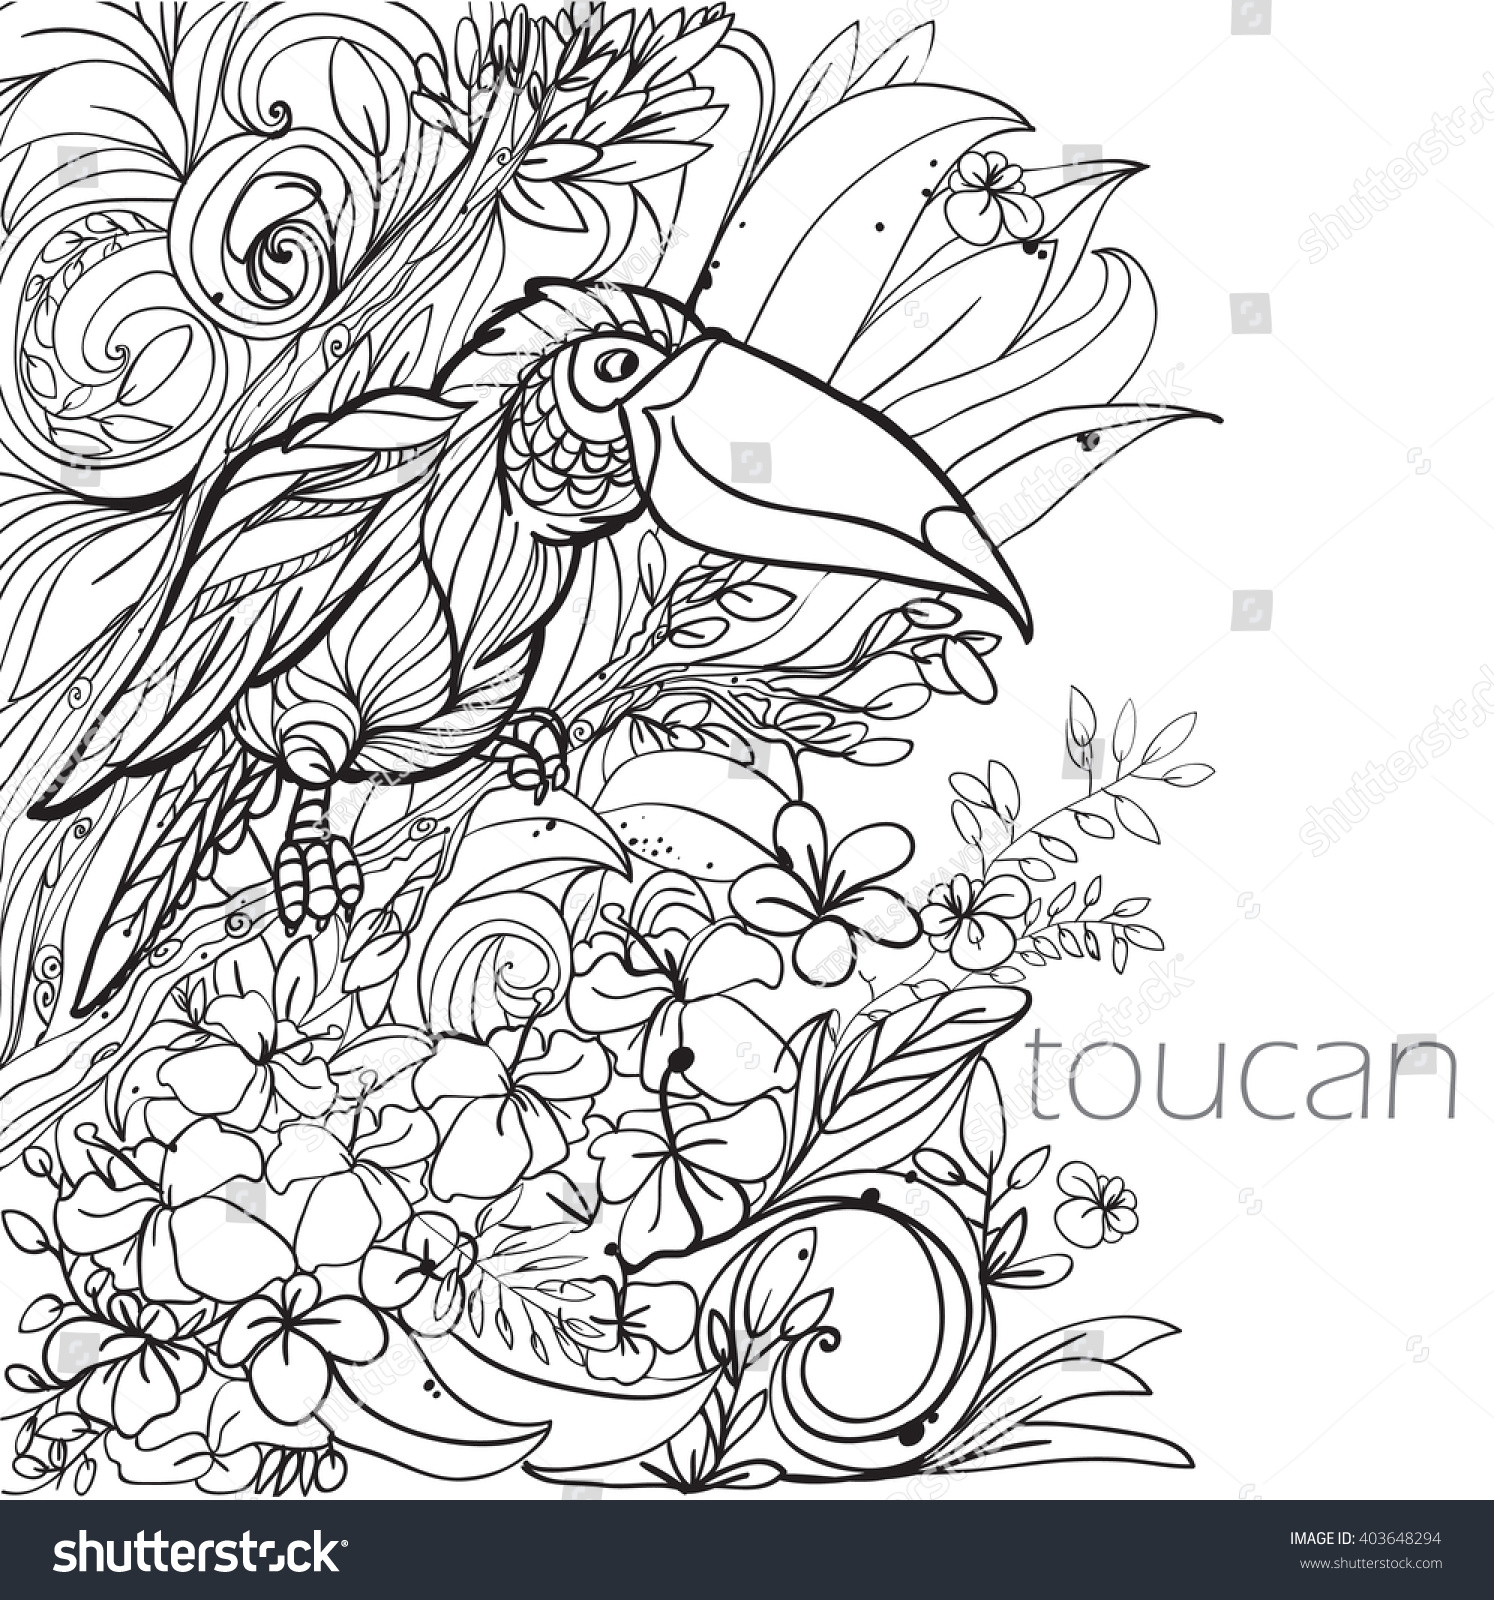 Coloring Pages Tropical Birds Flowers Leaves Stock Vector (Royalty ...